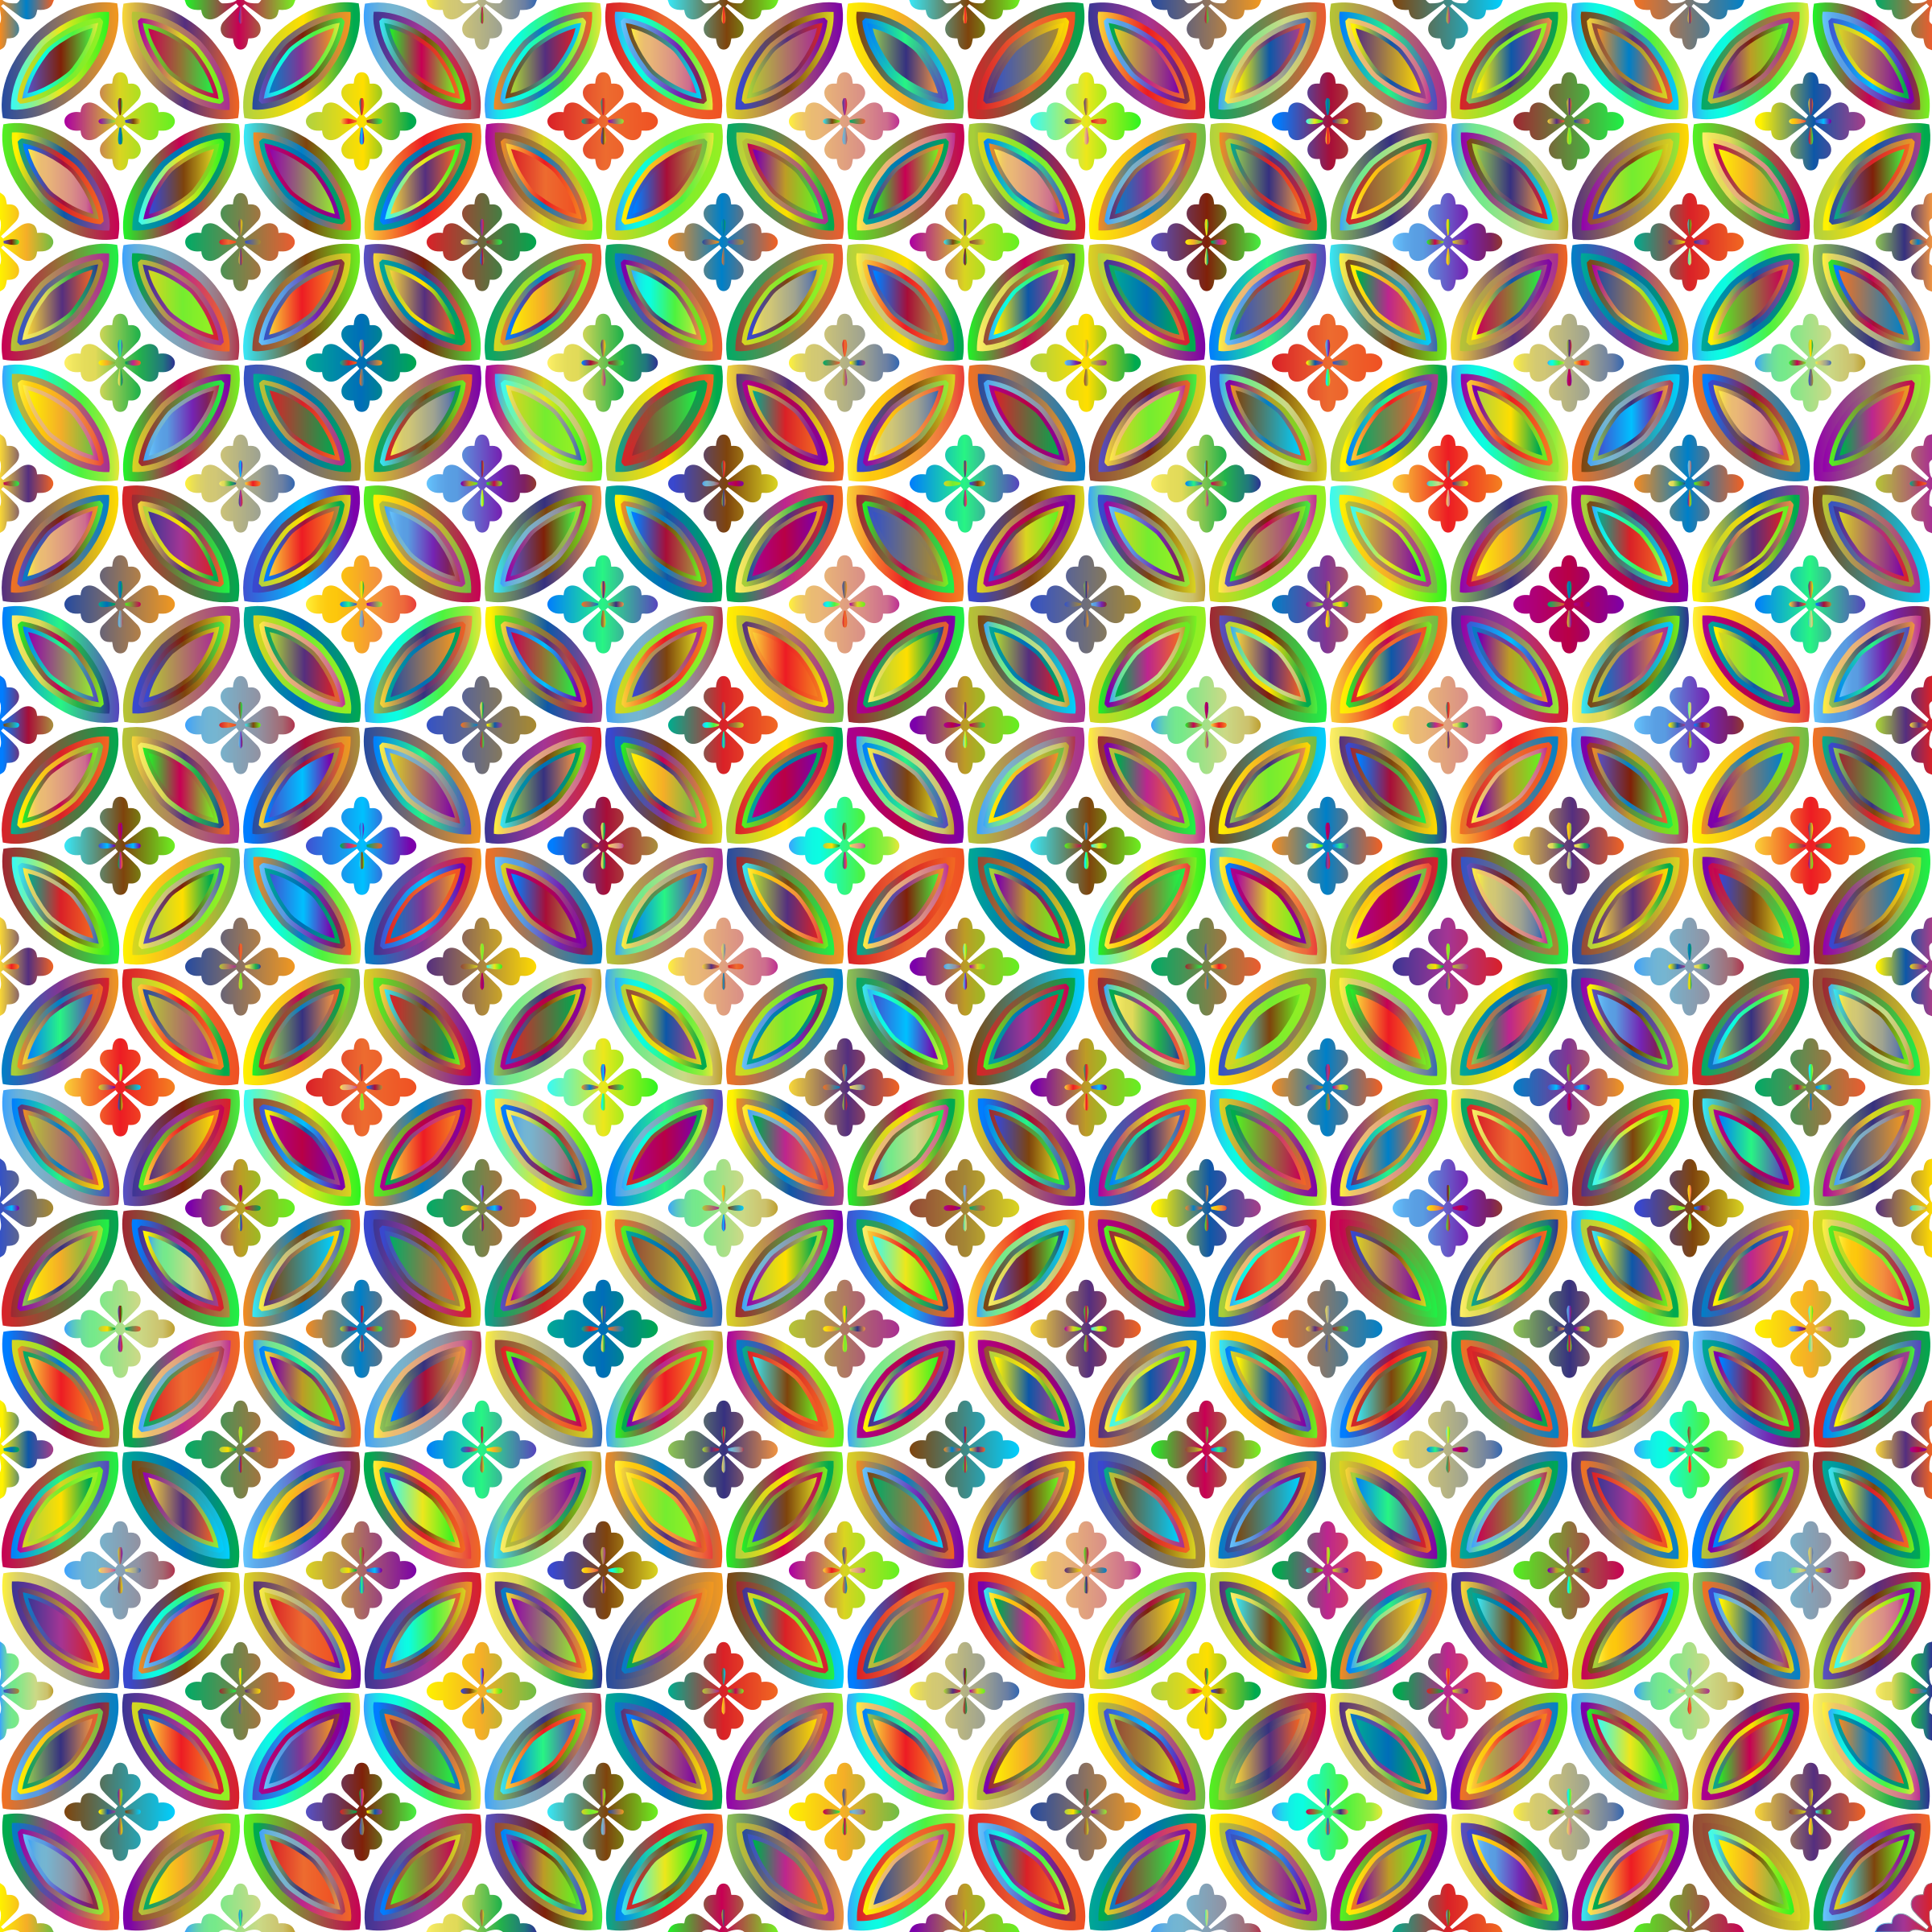 Prismatic Floral Design Pattern 3 No Background by GDJ